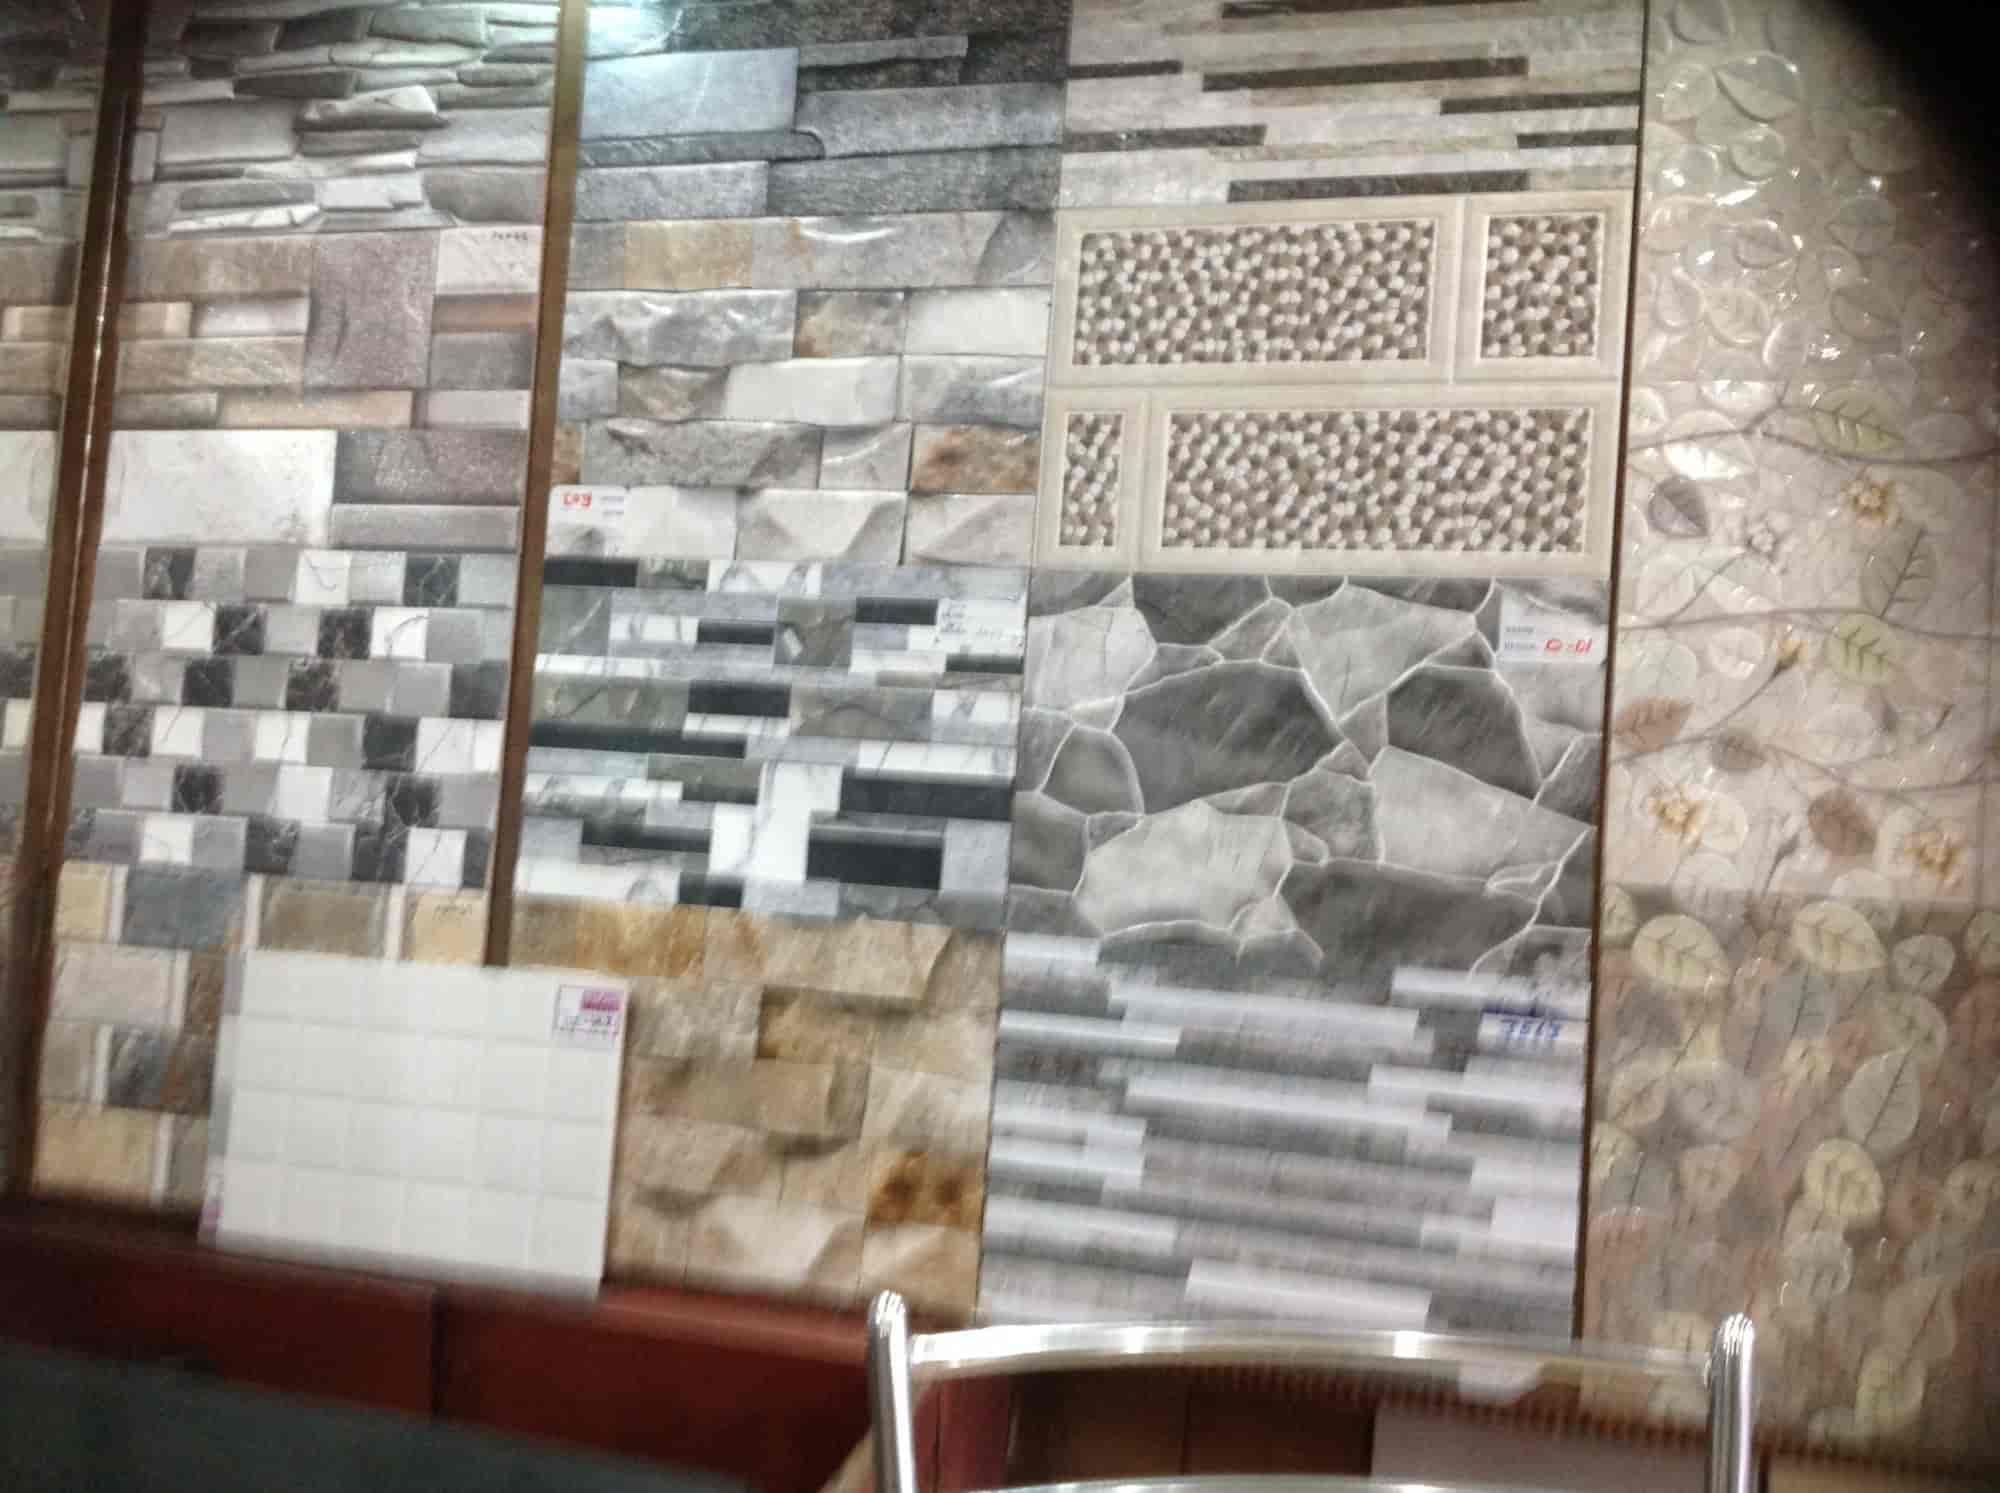 Universal ceramic tile distributors columbialabelsfo universal ceramic tile distributors inc dailygadgetfo Gallery